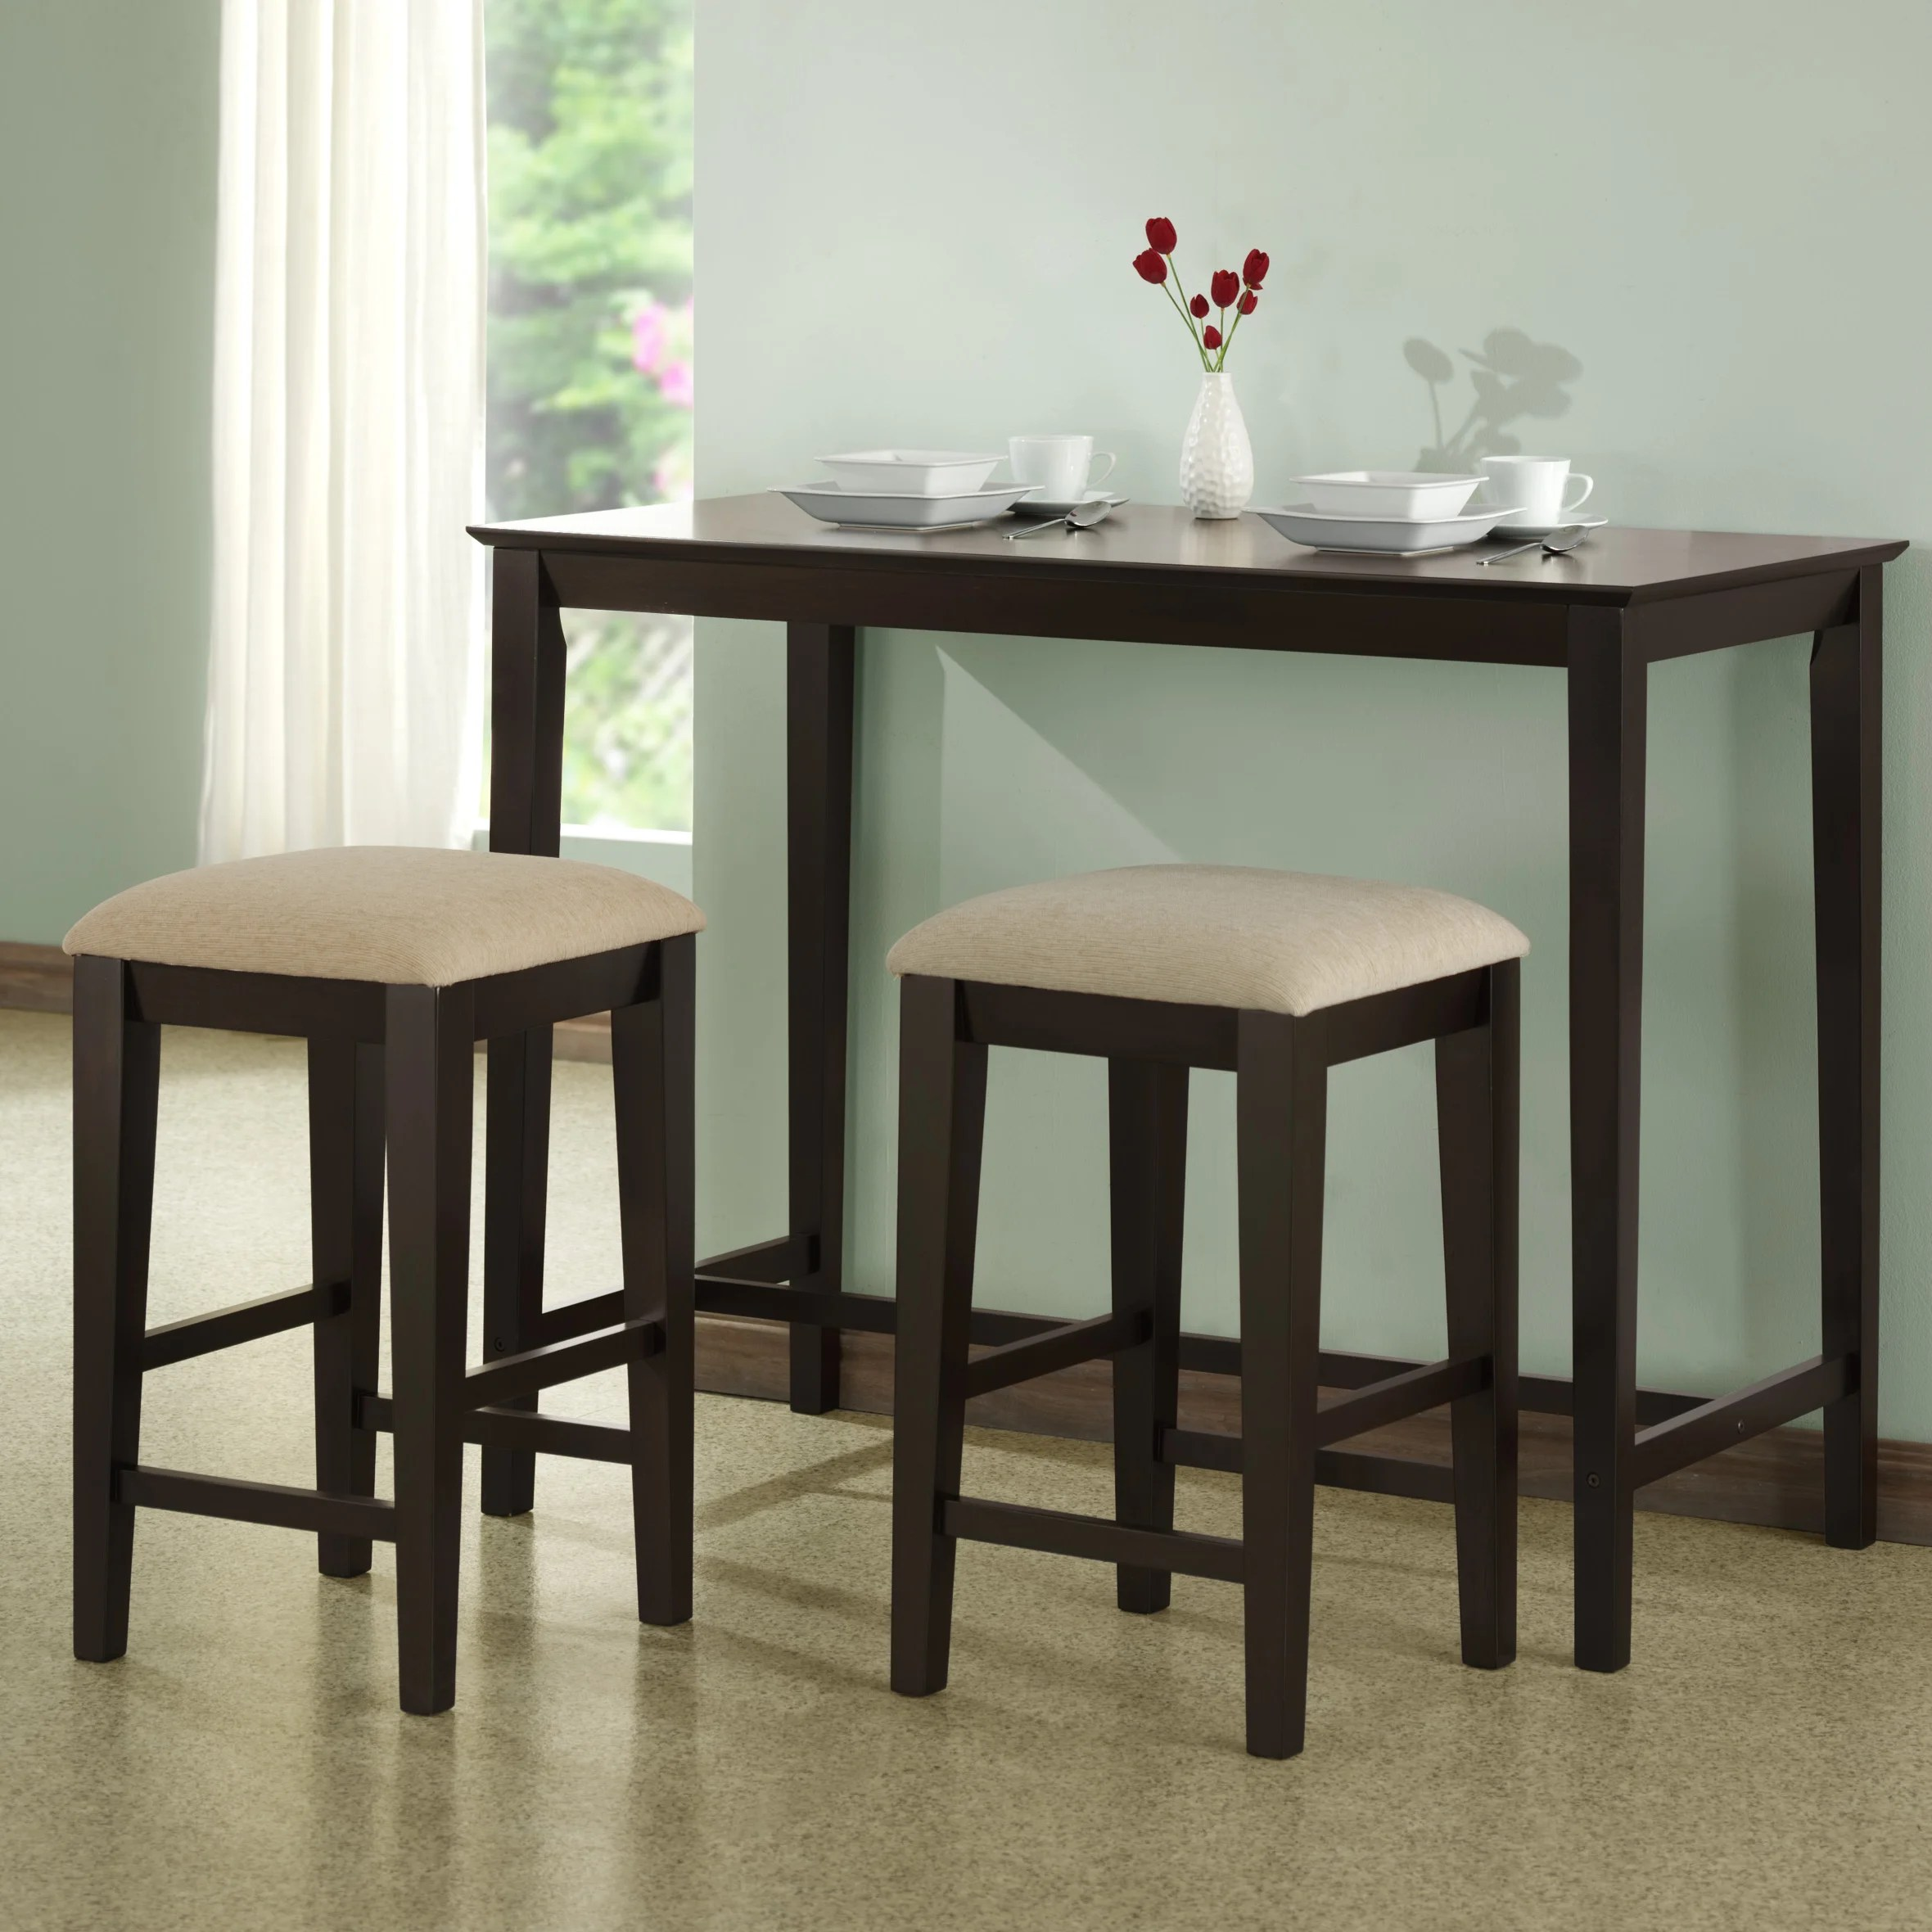 Monarch Specialties Inc Counter Height Kitchen Table MNQ bar height kitchen table Monarch Specialties Inc Counter Height Kitchen Table